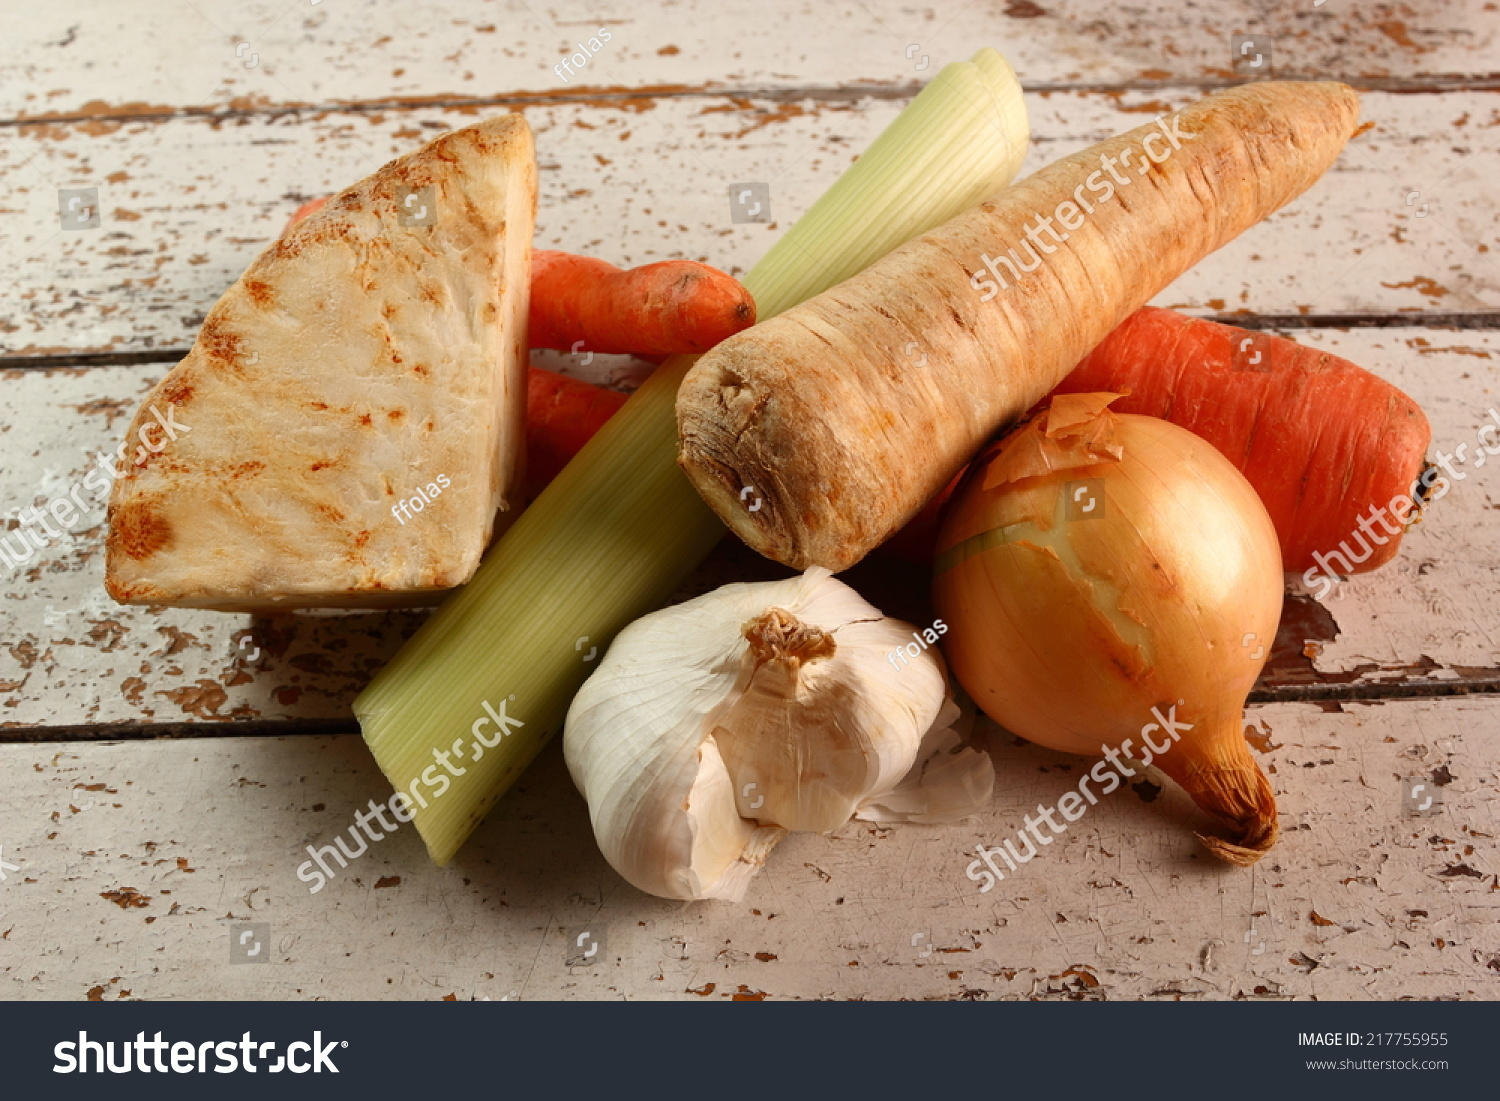 Vegetables to make broth celery carrot parsley root for Cookie lee jewelry catalog 2009